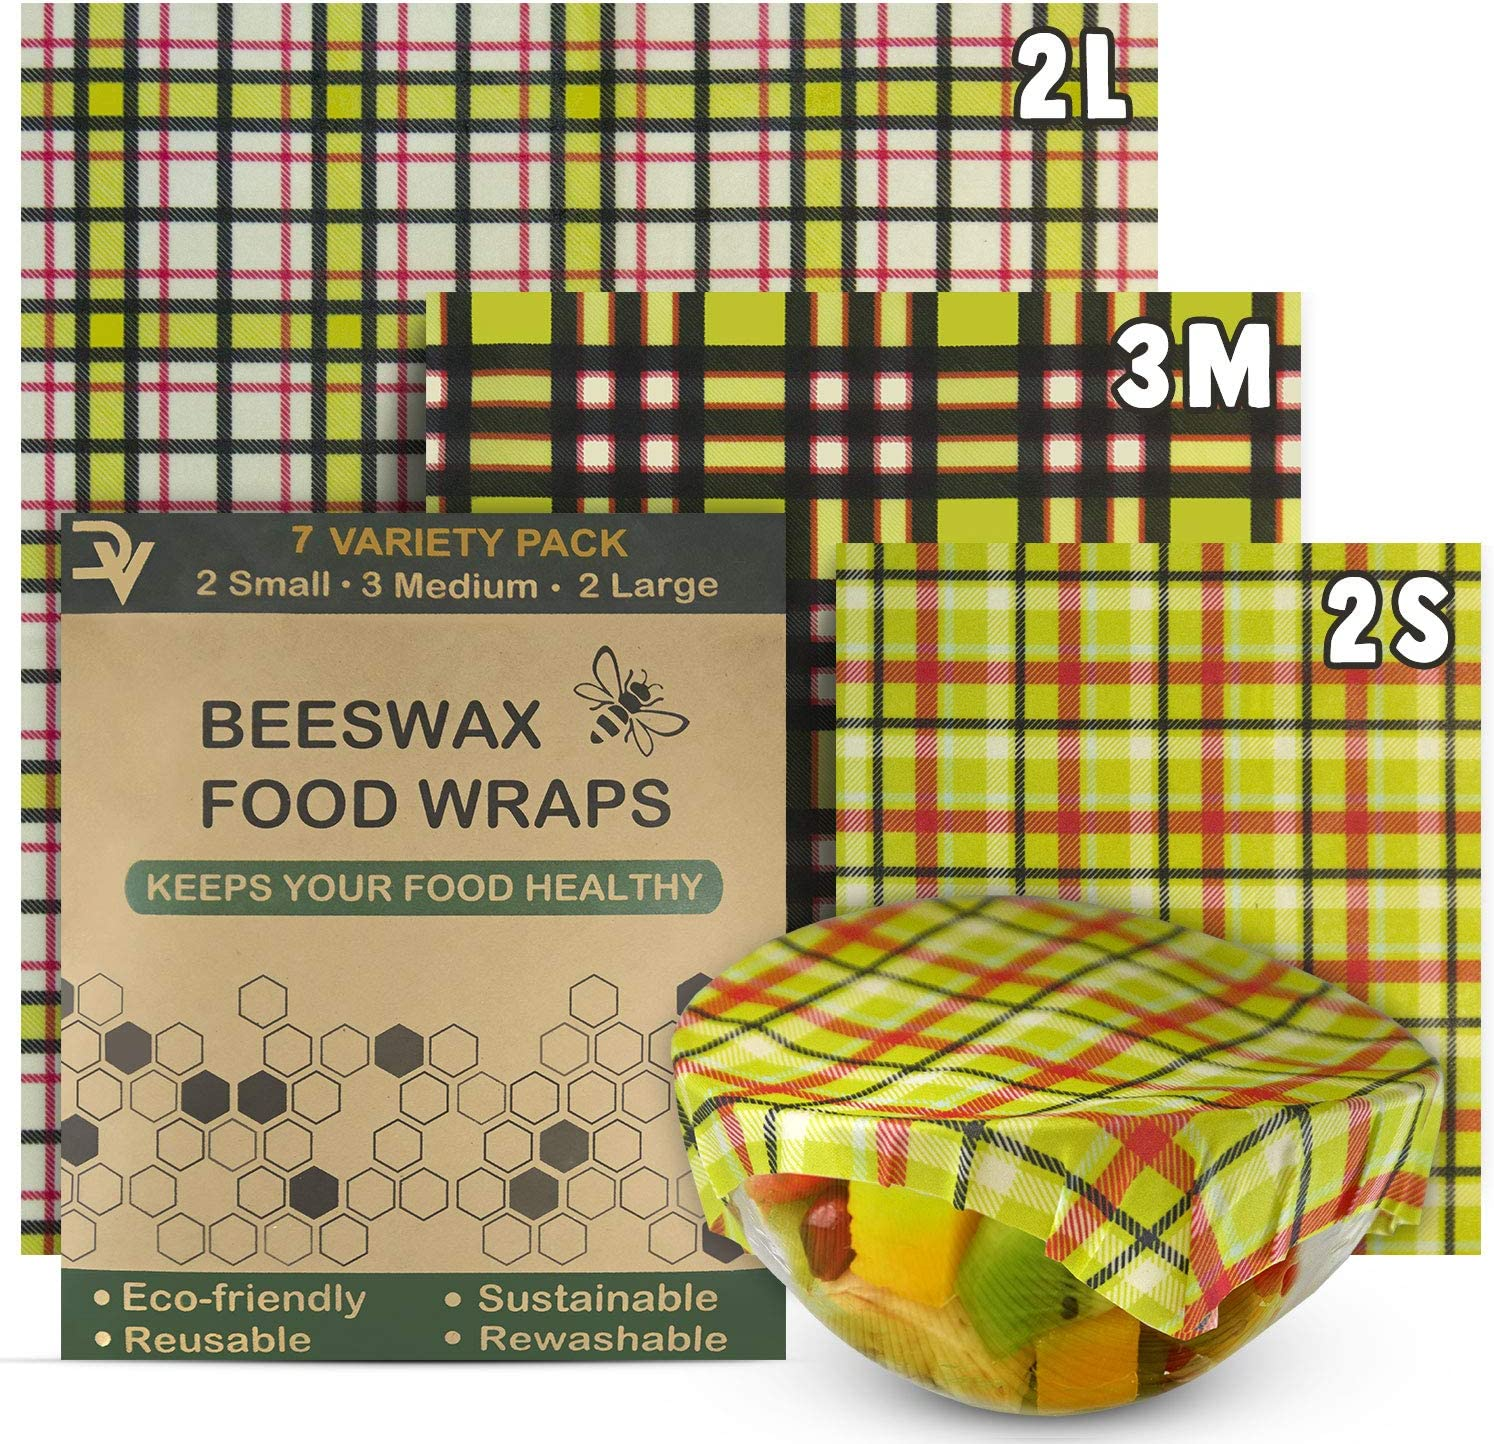 DEIVVOX Organic Beeswax Food Wrap Set Of 7 - Reusable Wax Food Wrap - Natural Beewax Wrapping - Bee Wax Wraps Sustainable Food Storage - Bee Wrap Plastic Free - Odorless Eco-friendly Reusable